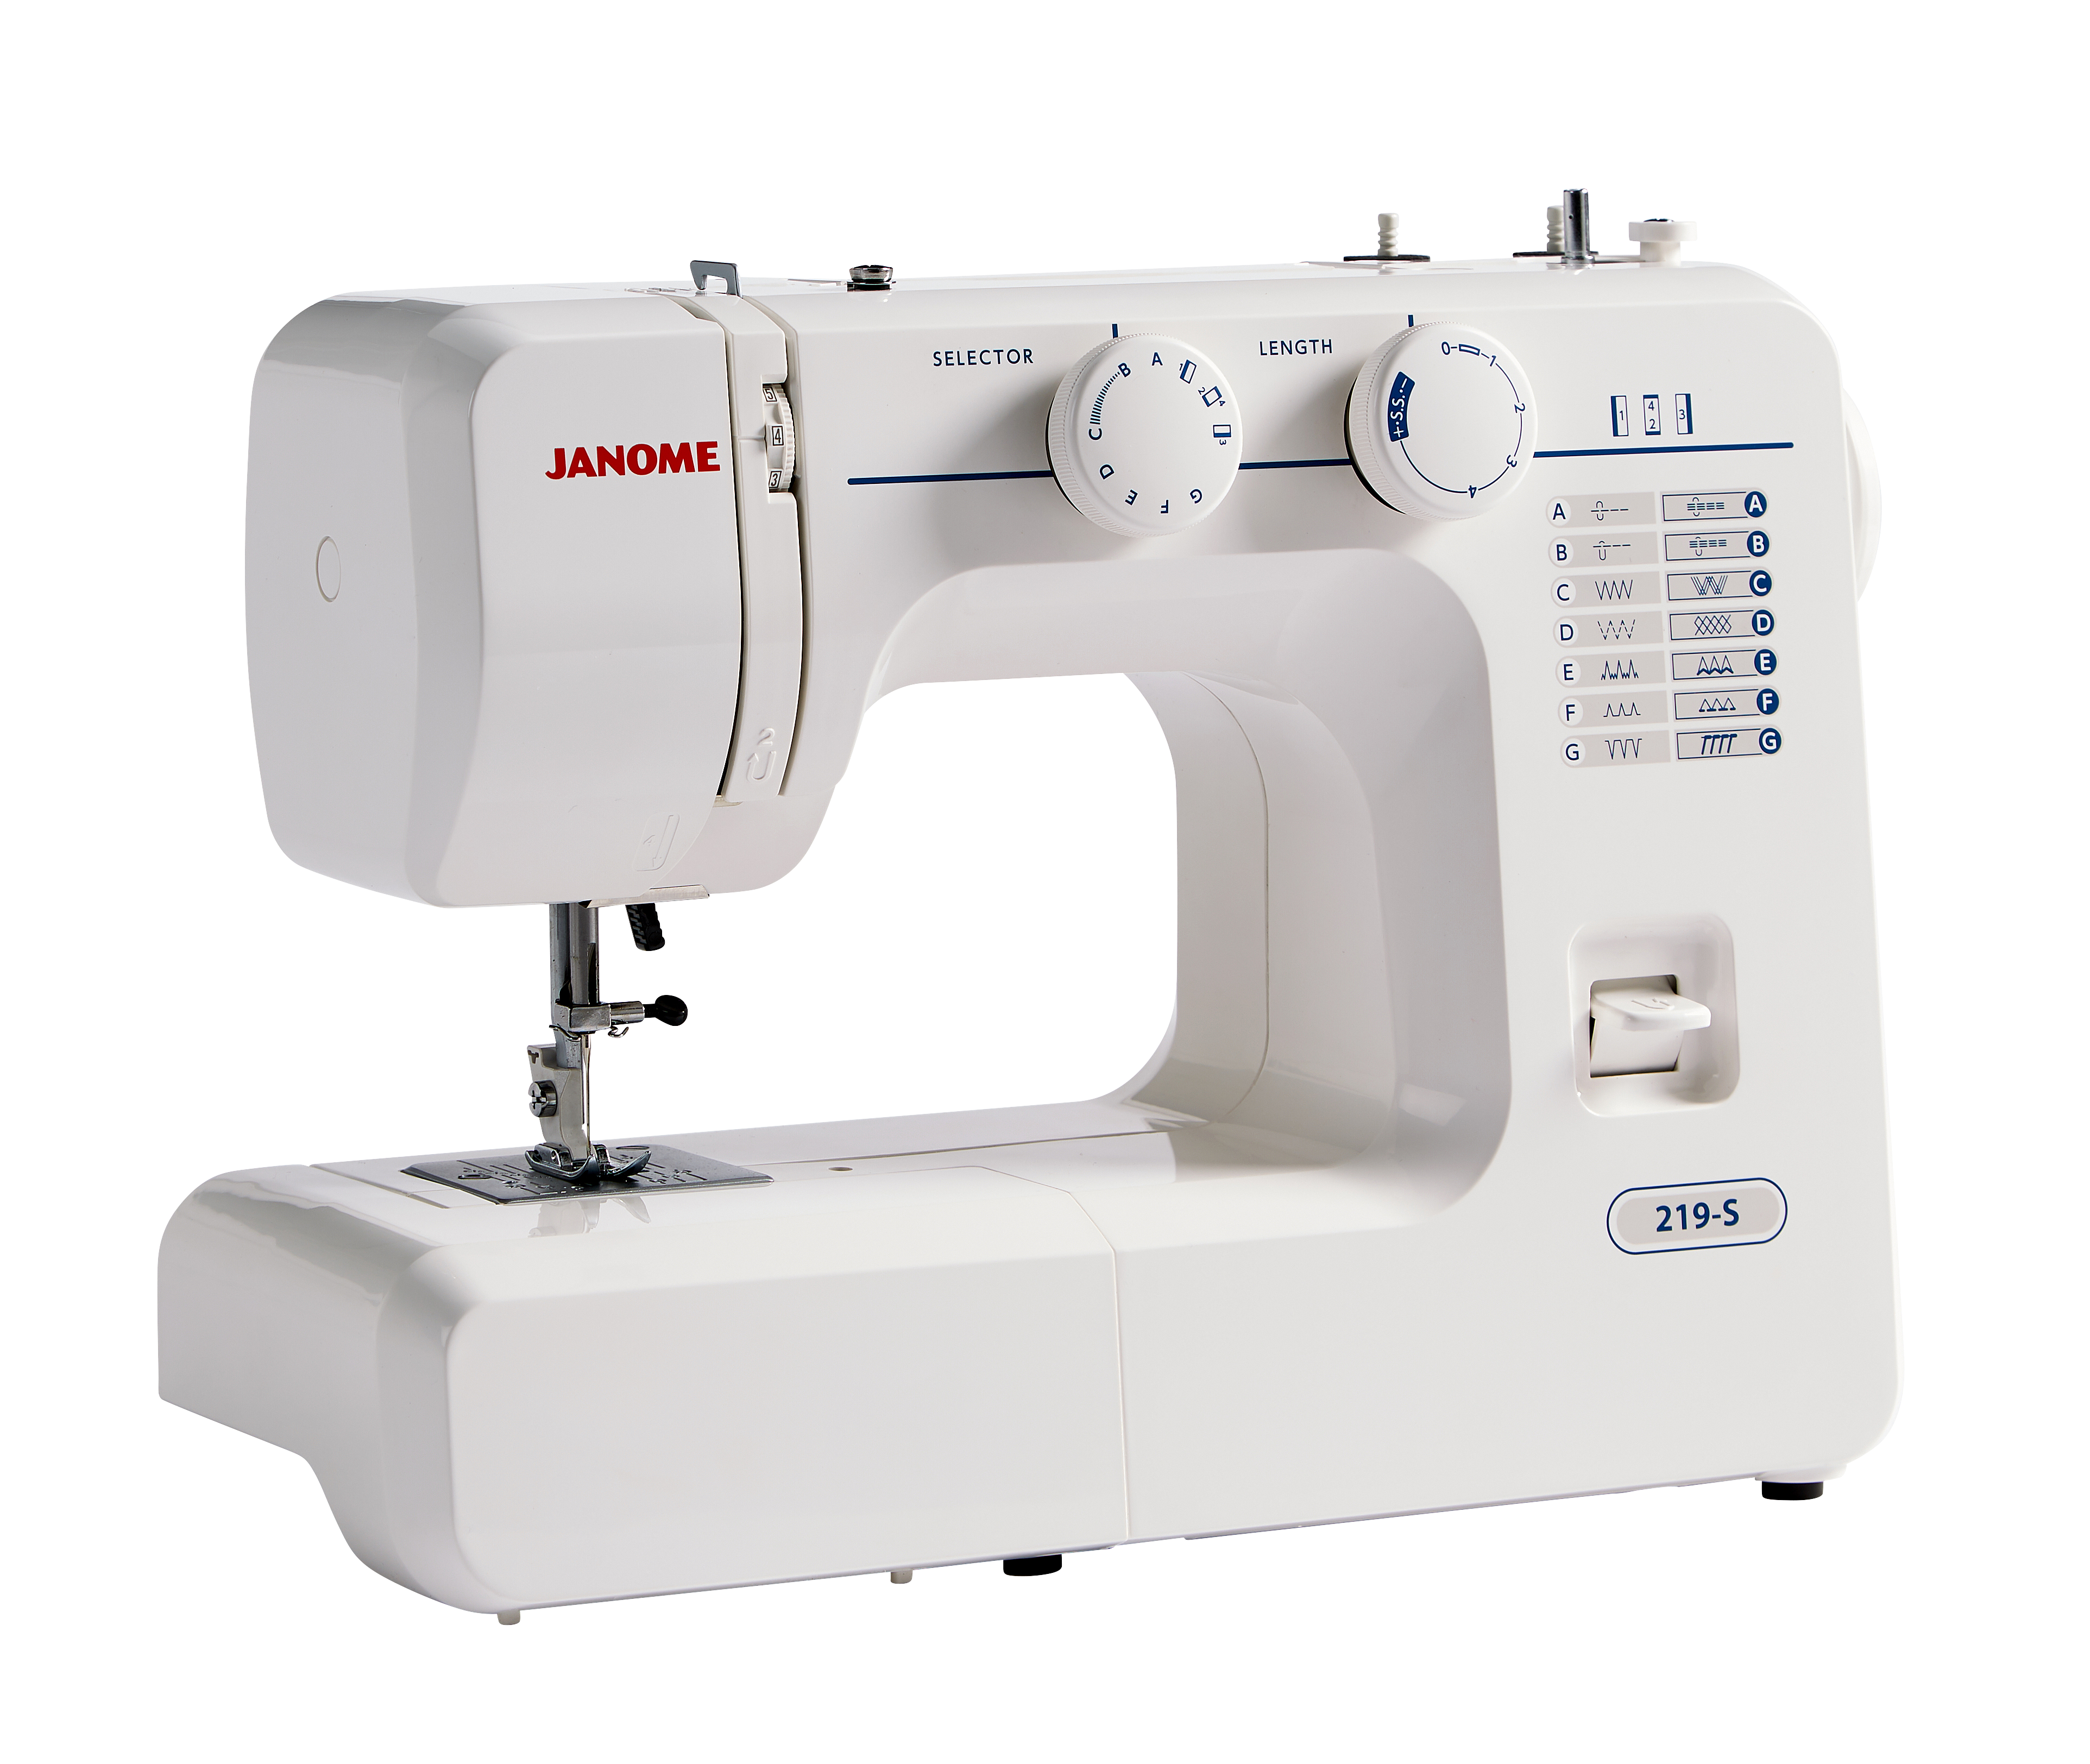 Janome 219-S